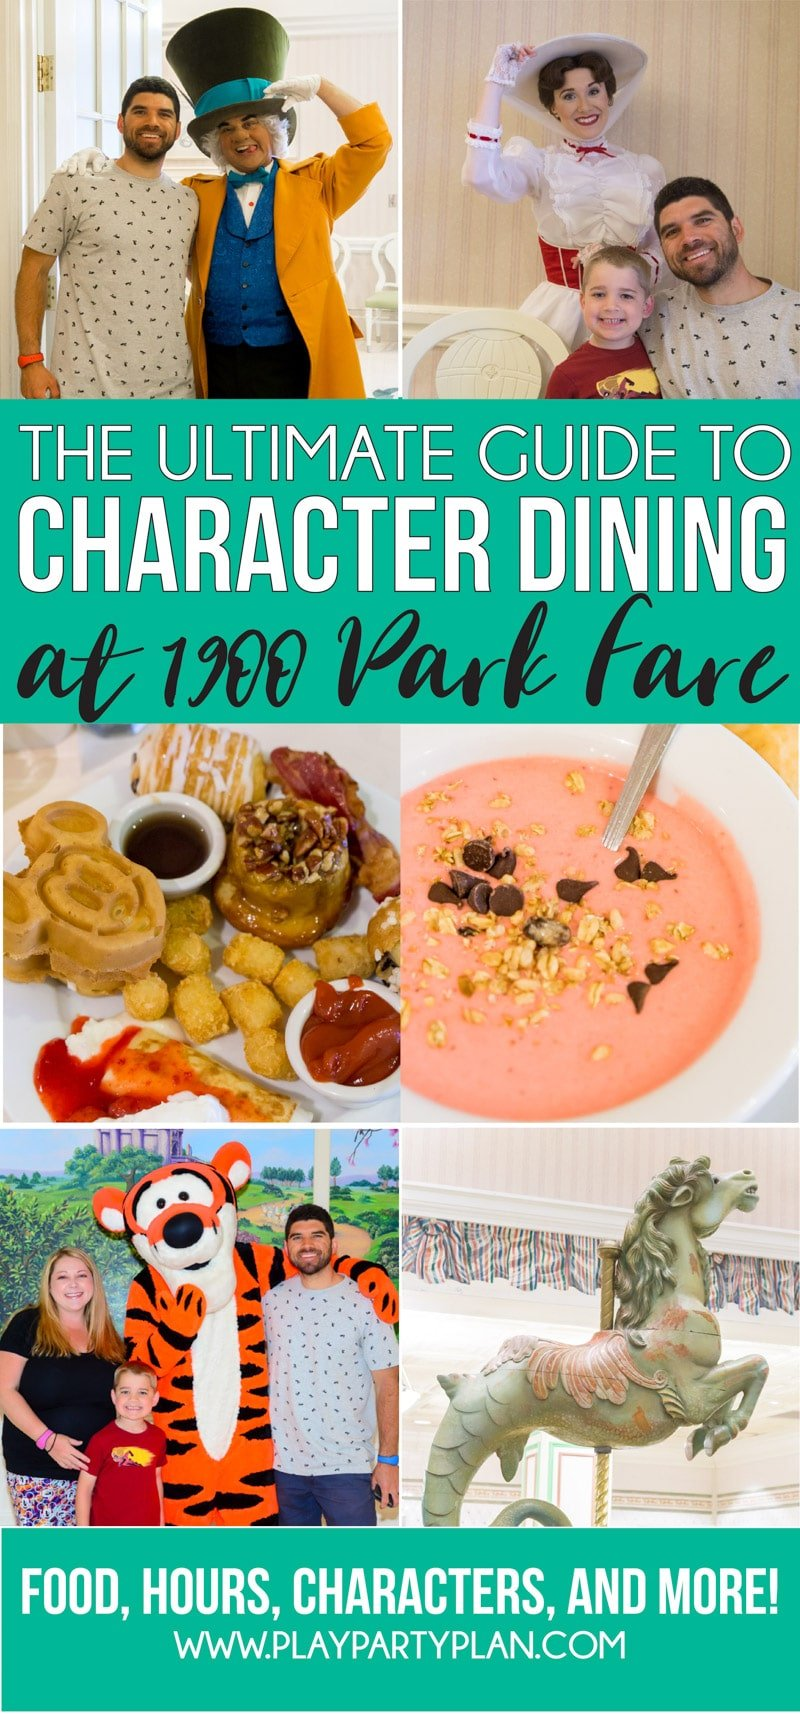 The Ultimate Guide To Disney Character Dining At Walt Disney World